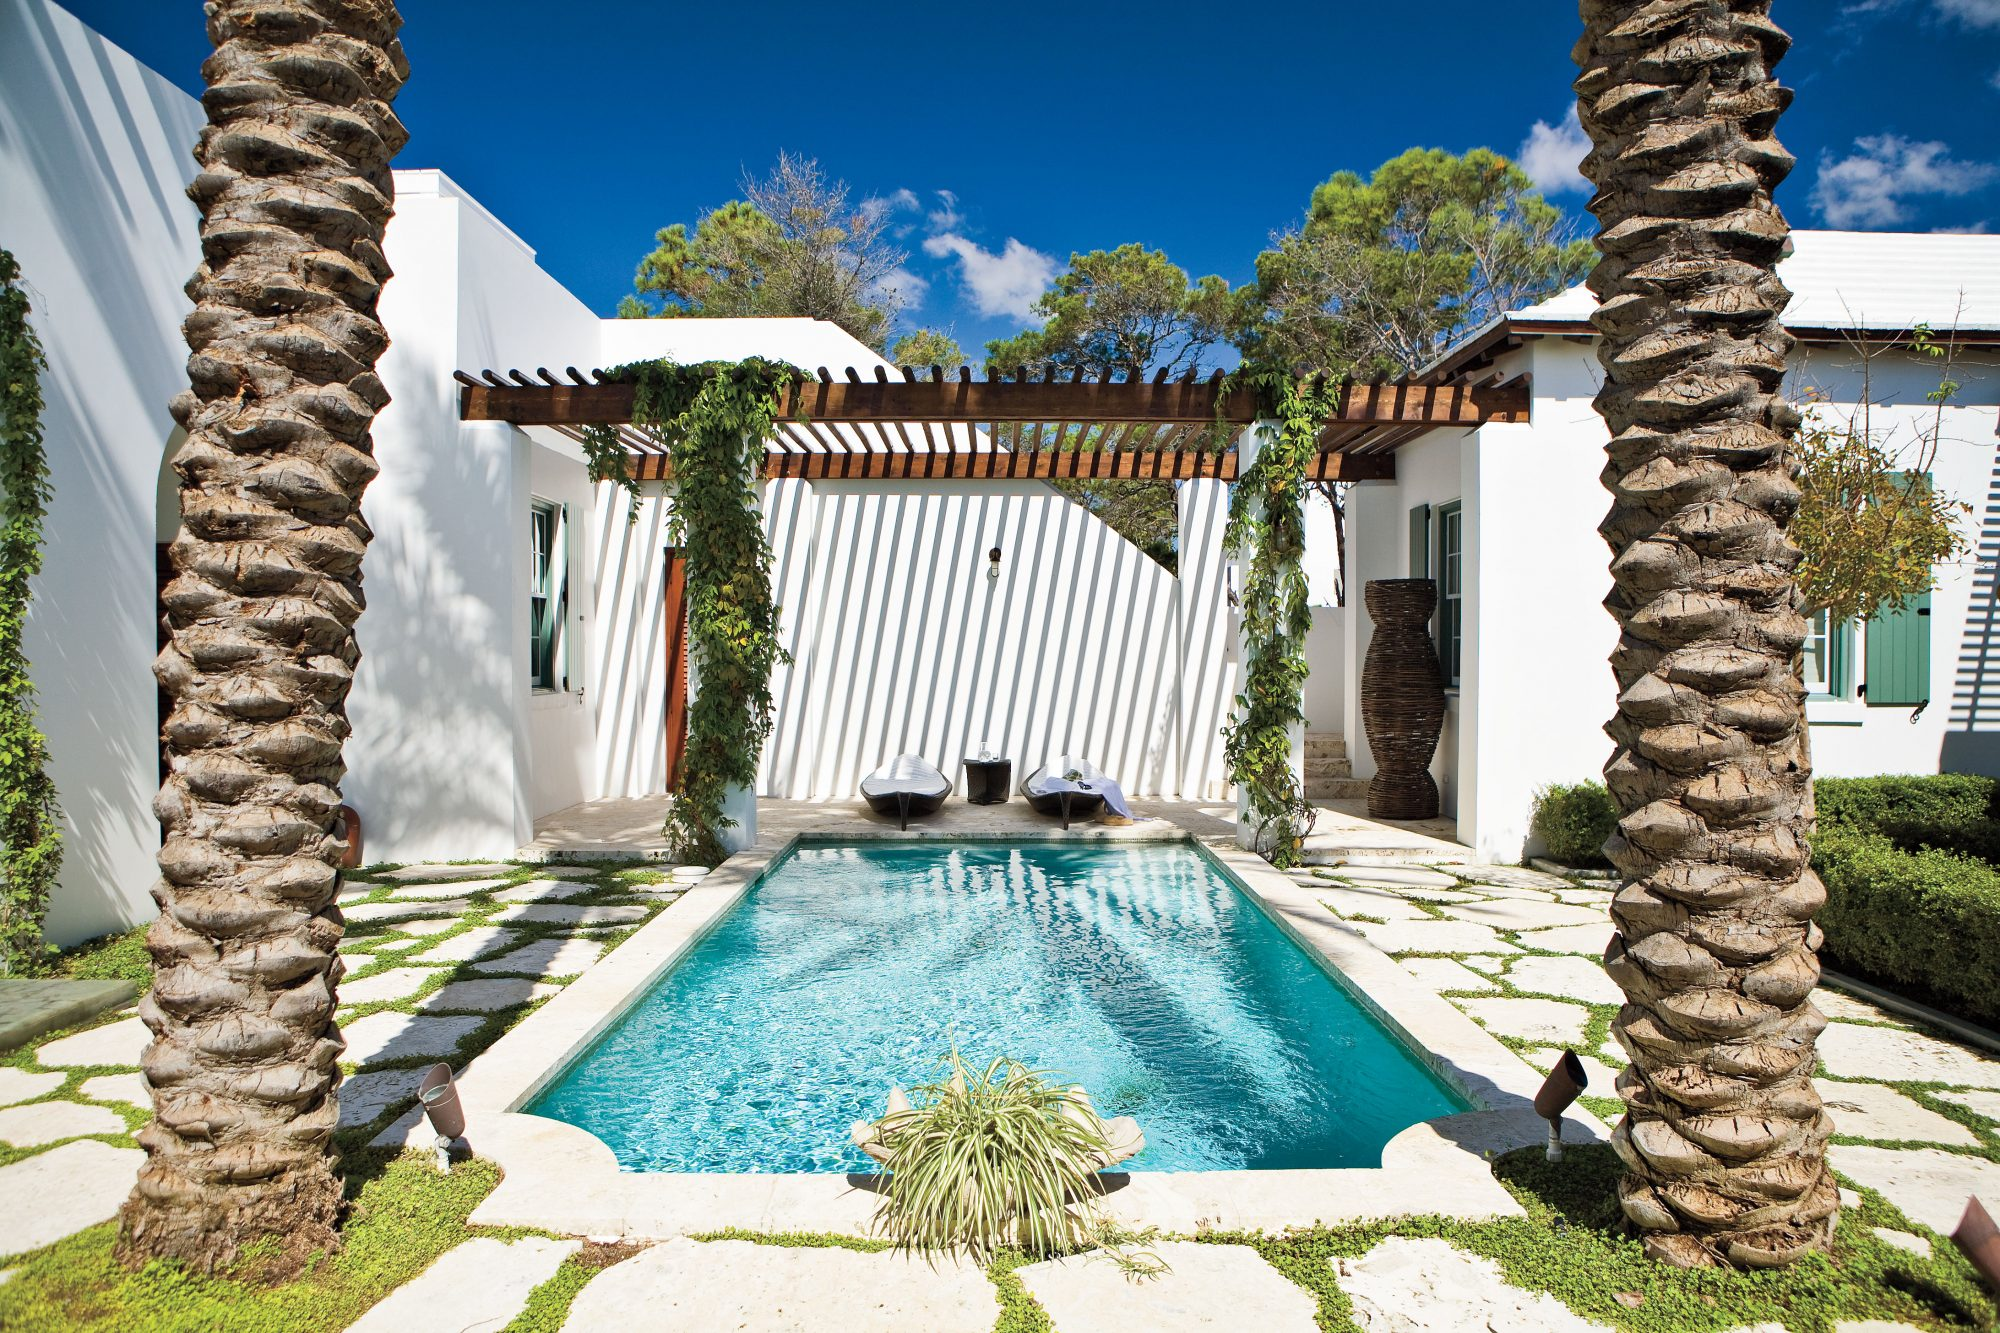 Alys Beach Pool Arbor